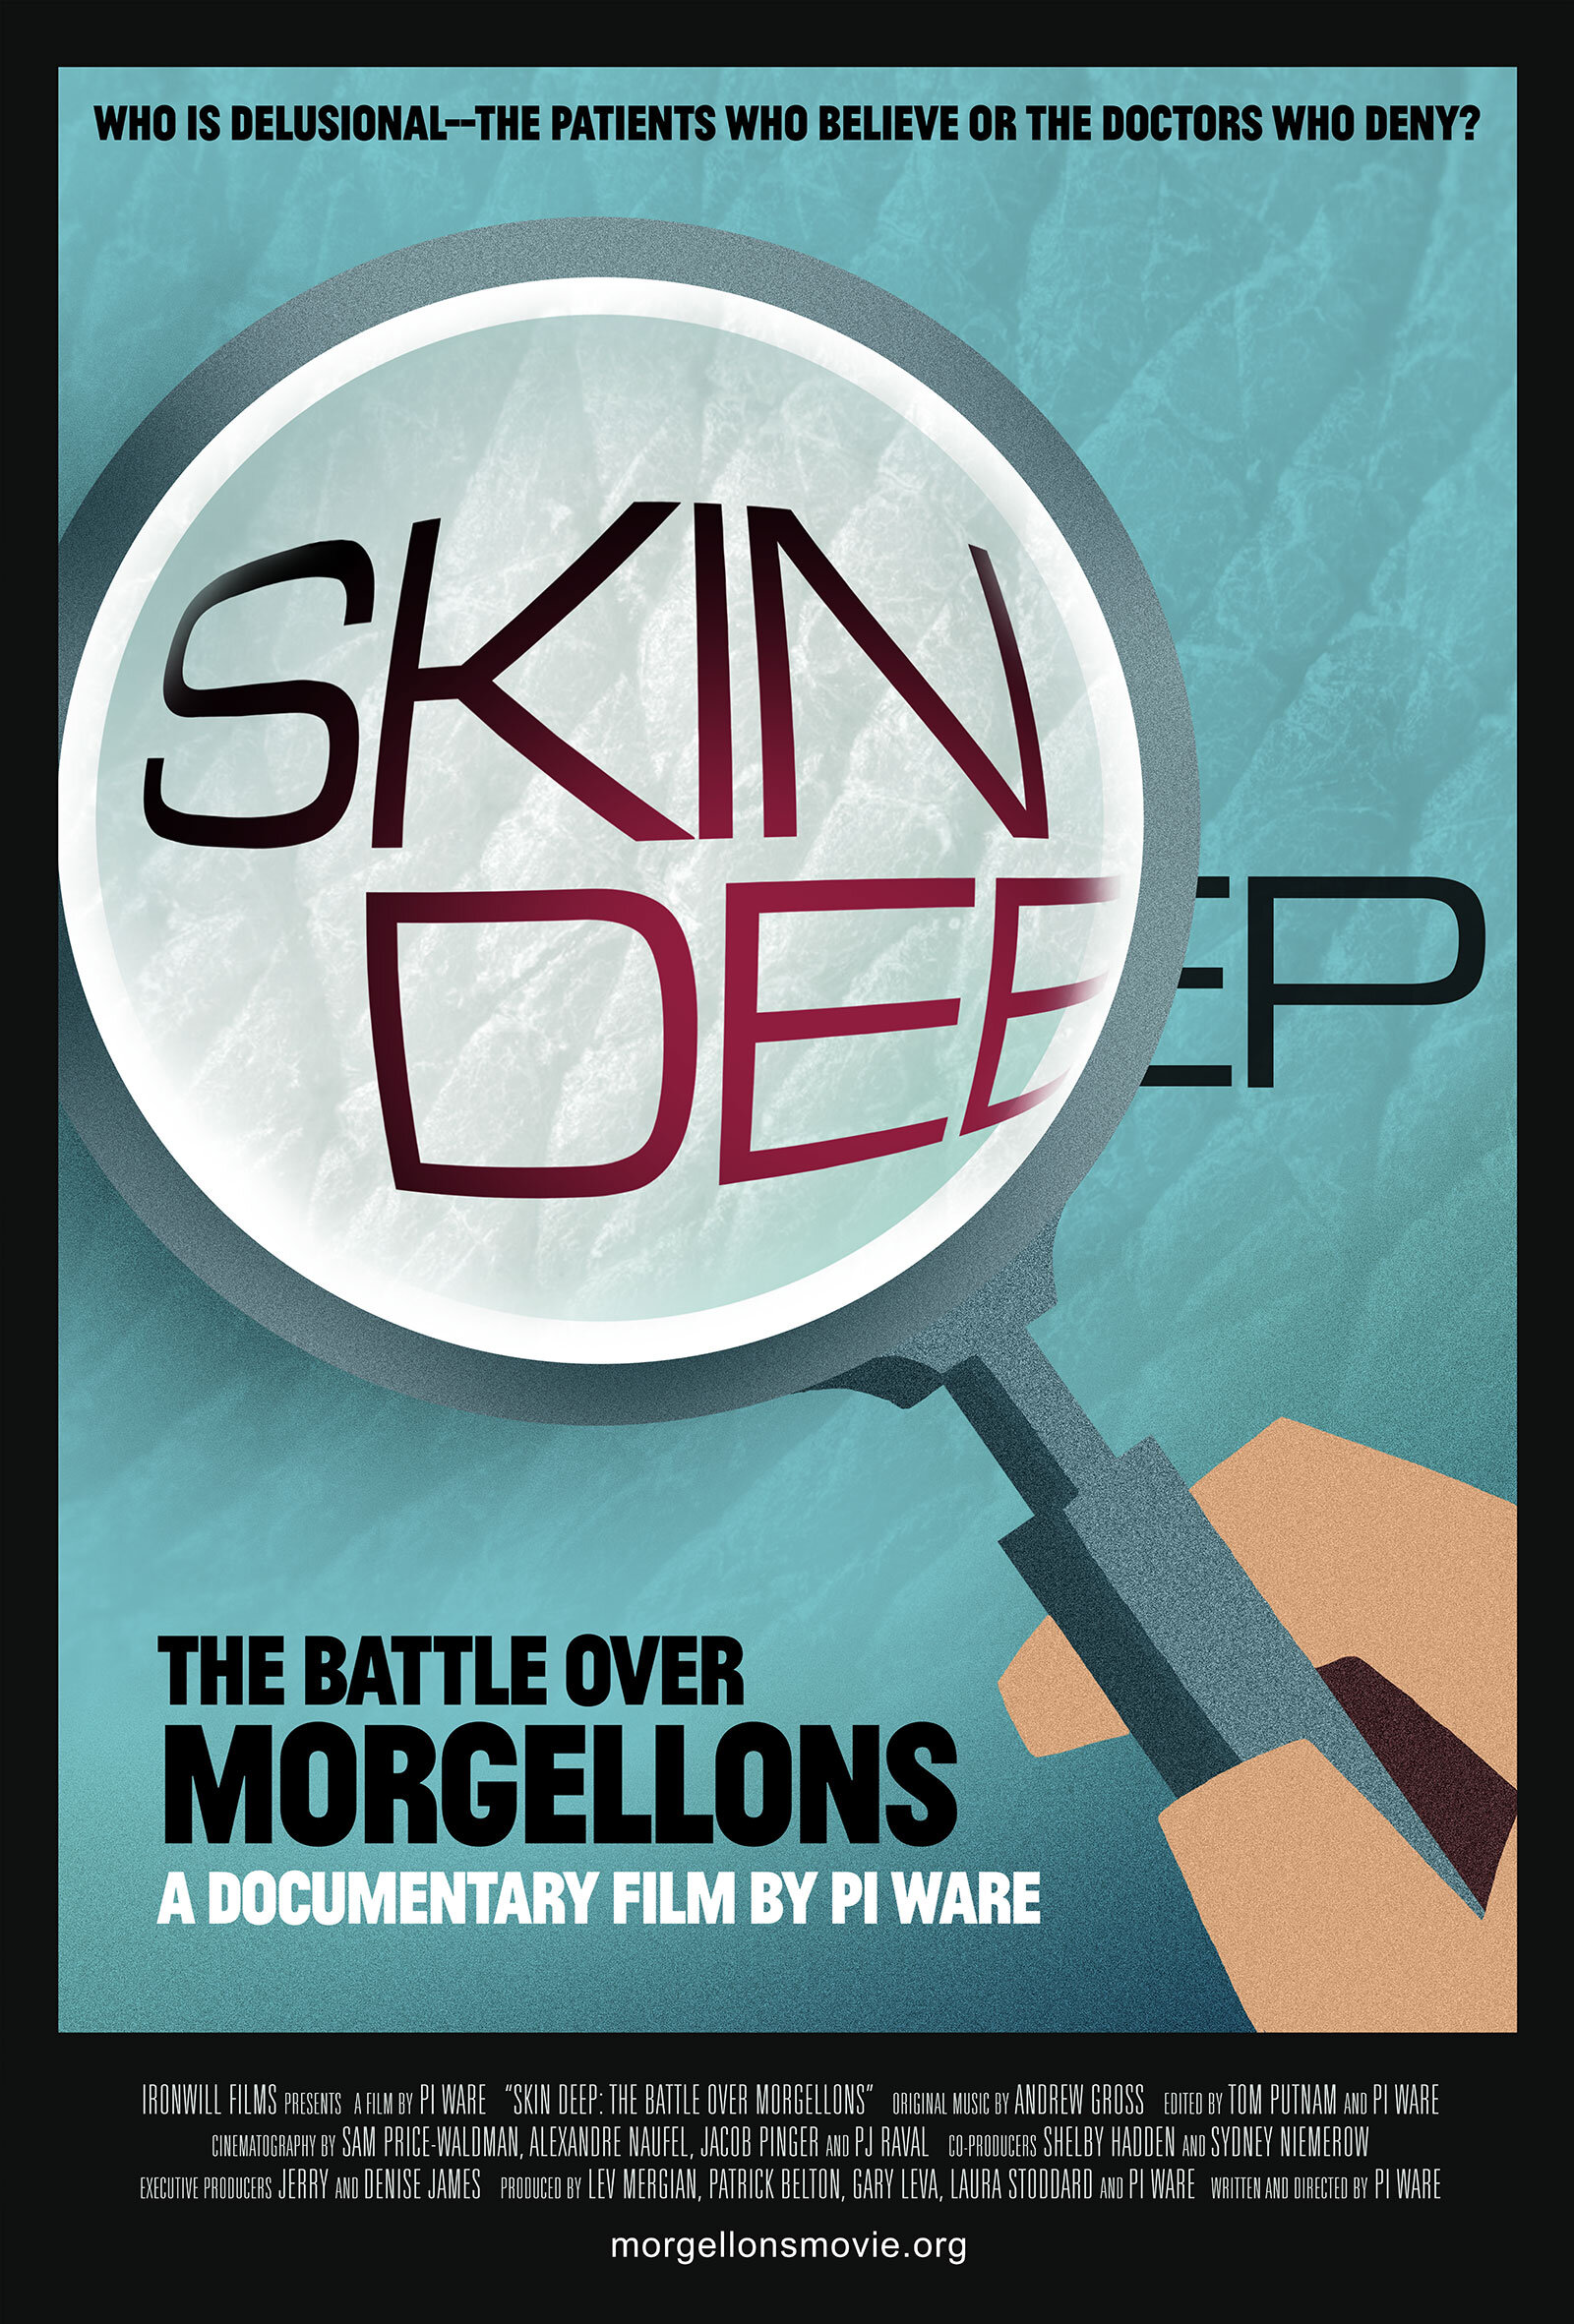 The new Skin Deep movie poster designed by Sam Smith.